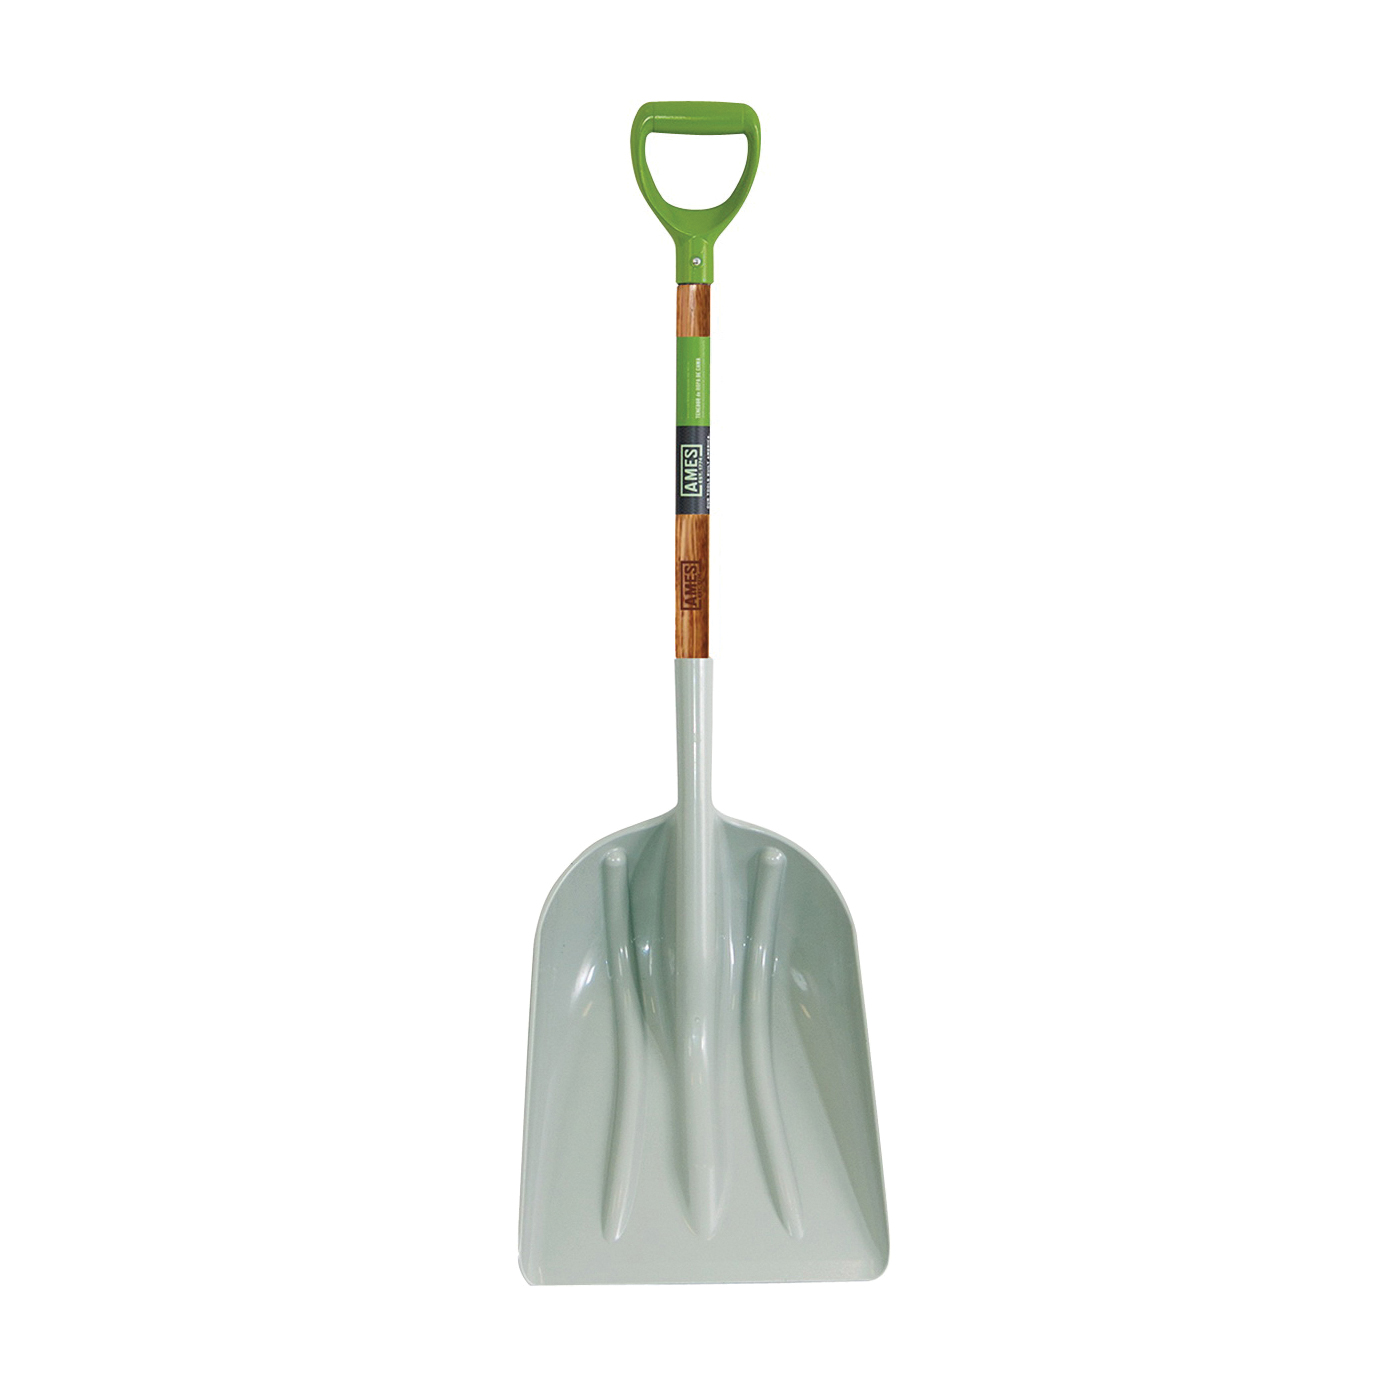 Picture of AMES 2682700 Scoop Shovel, 14 in W Blade, 18 in L Blade, ABS Blade, Northern Hardwood Handle, D-Shaped Handle